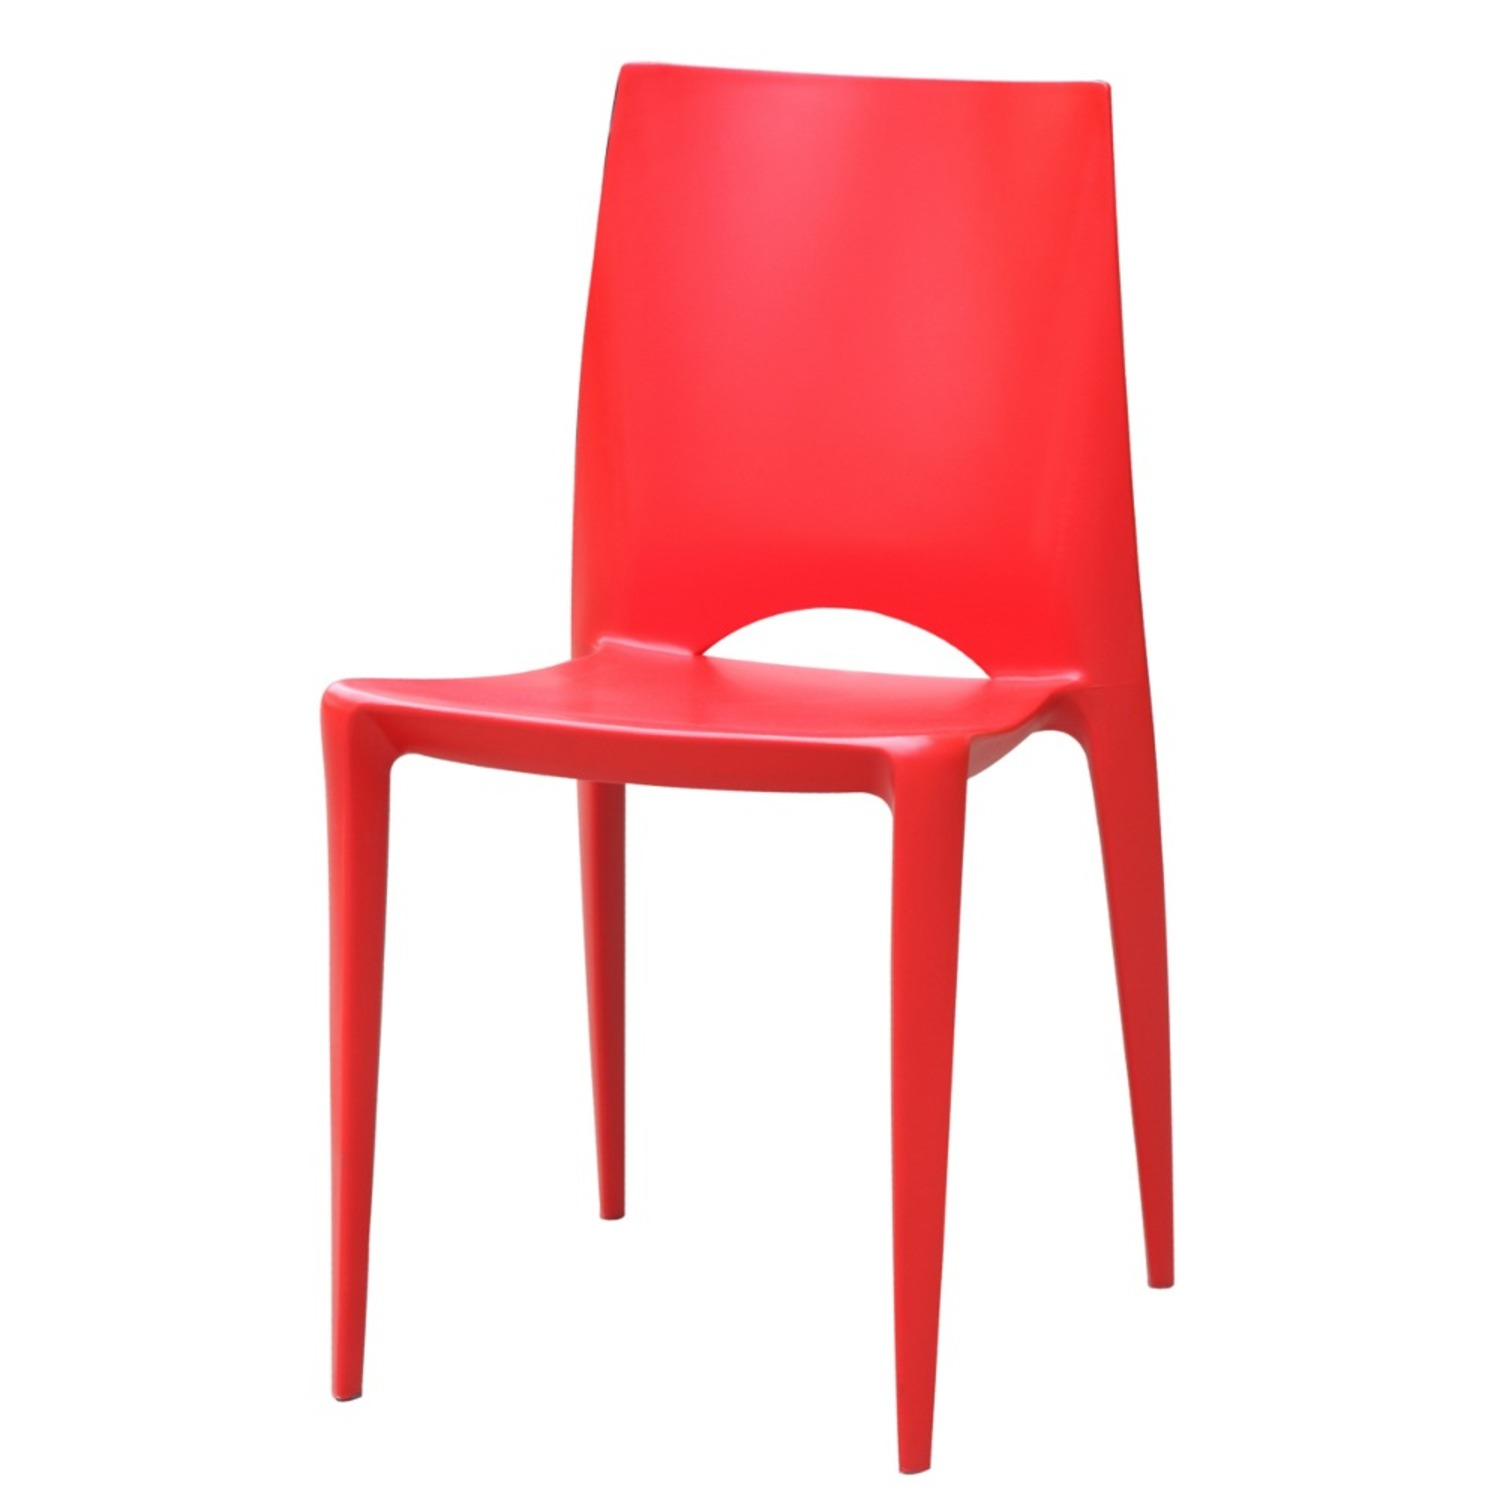 Dining Chair In Square-Shaped Red Finish - image-4